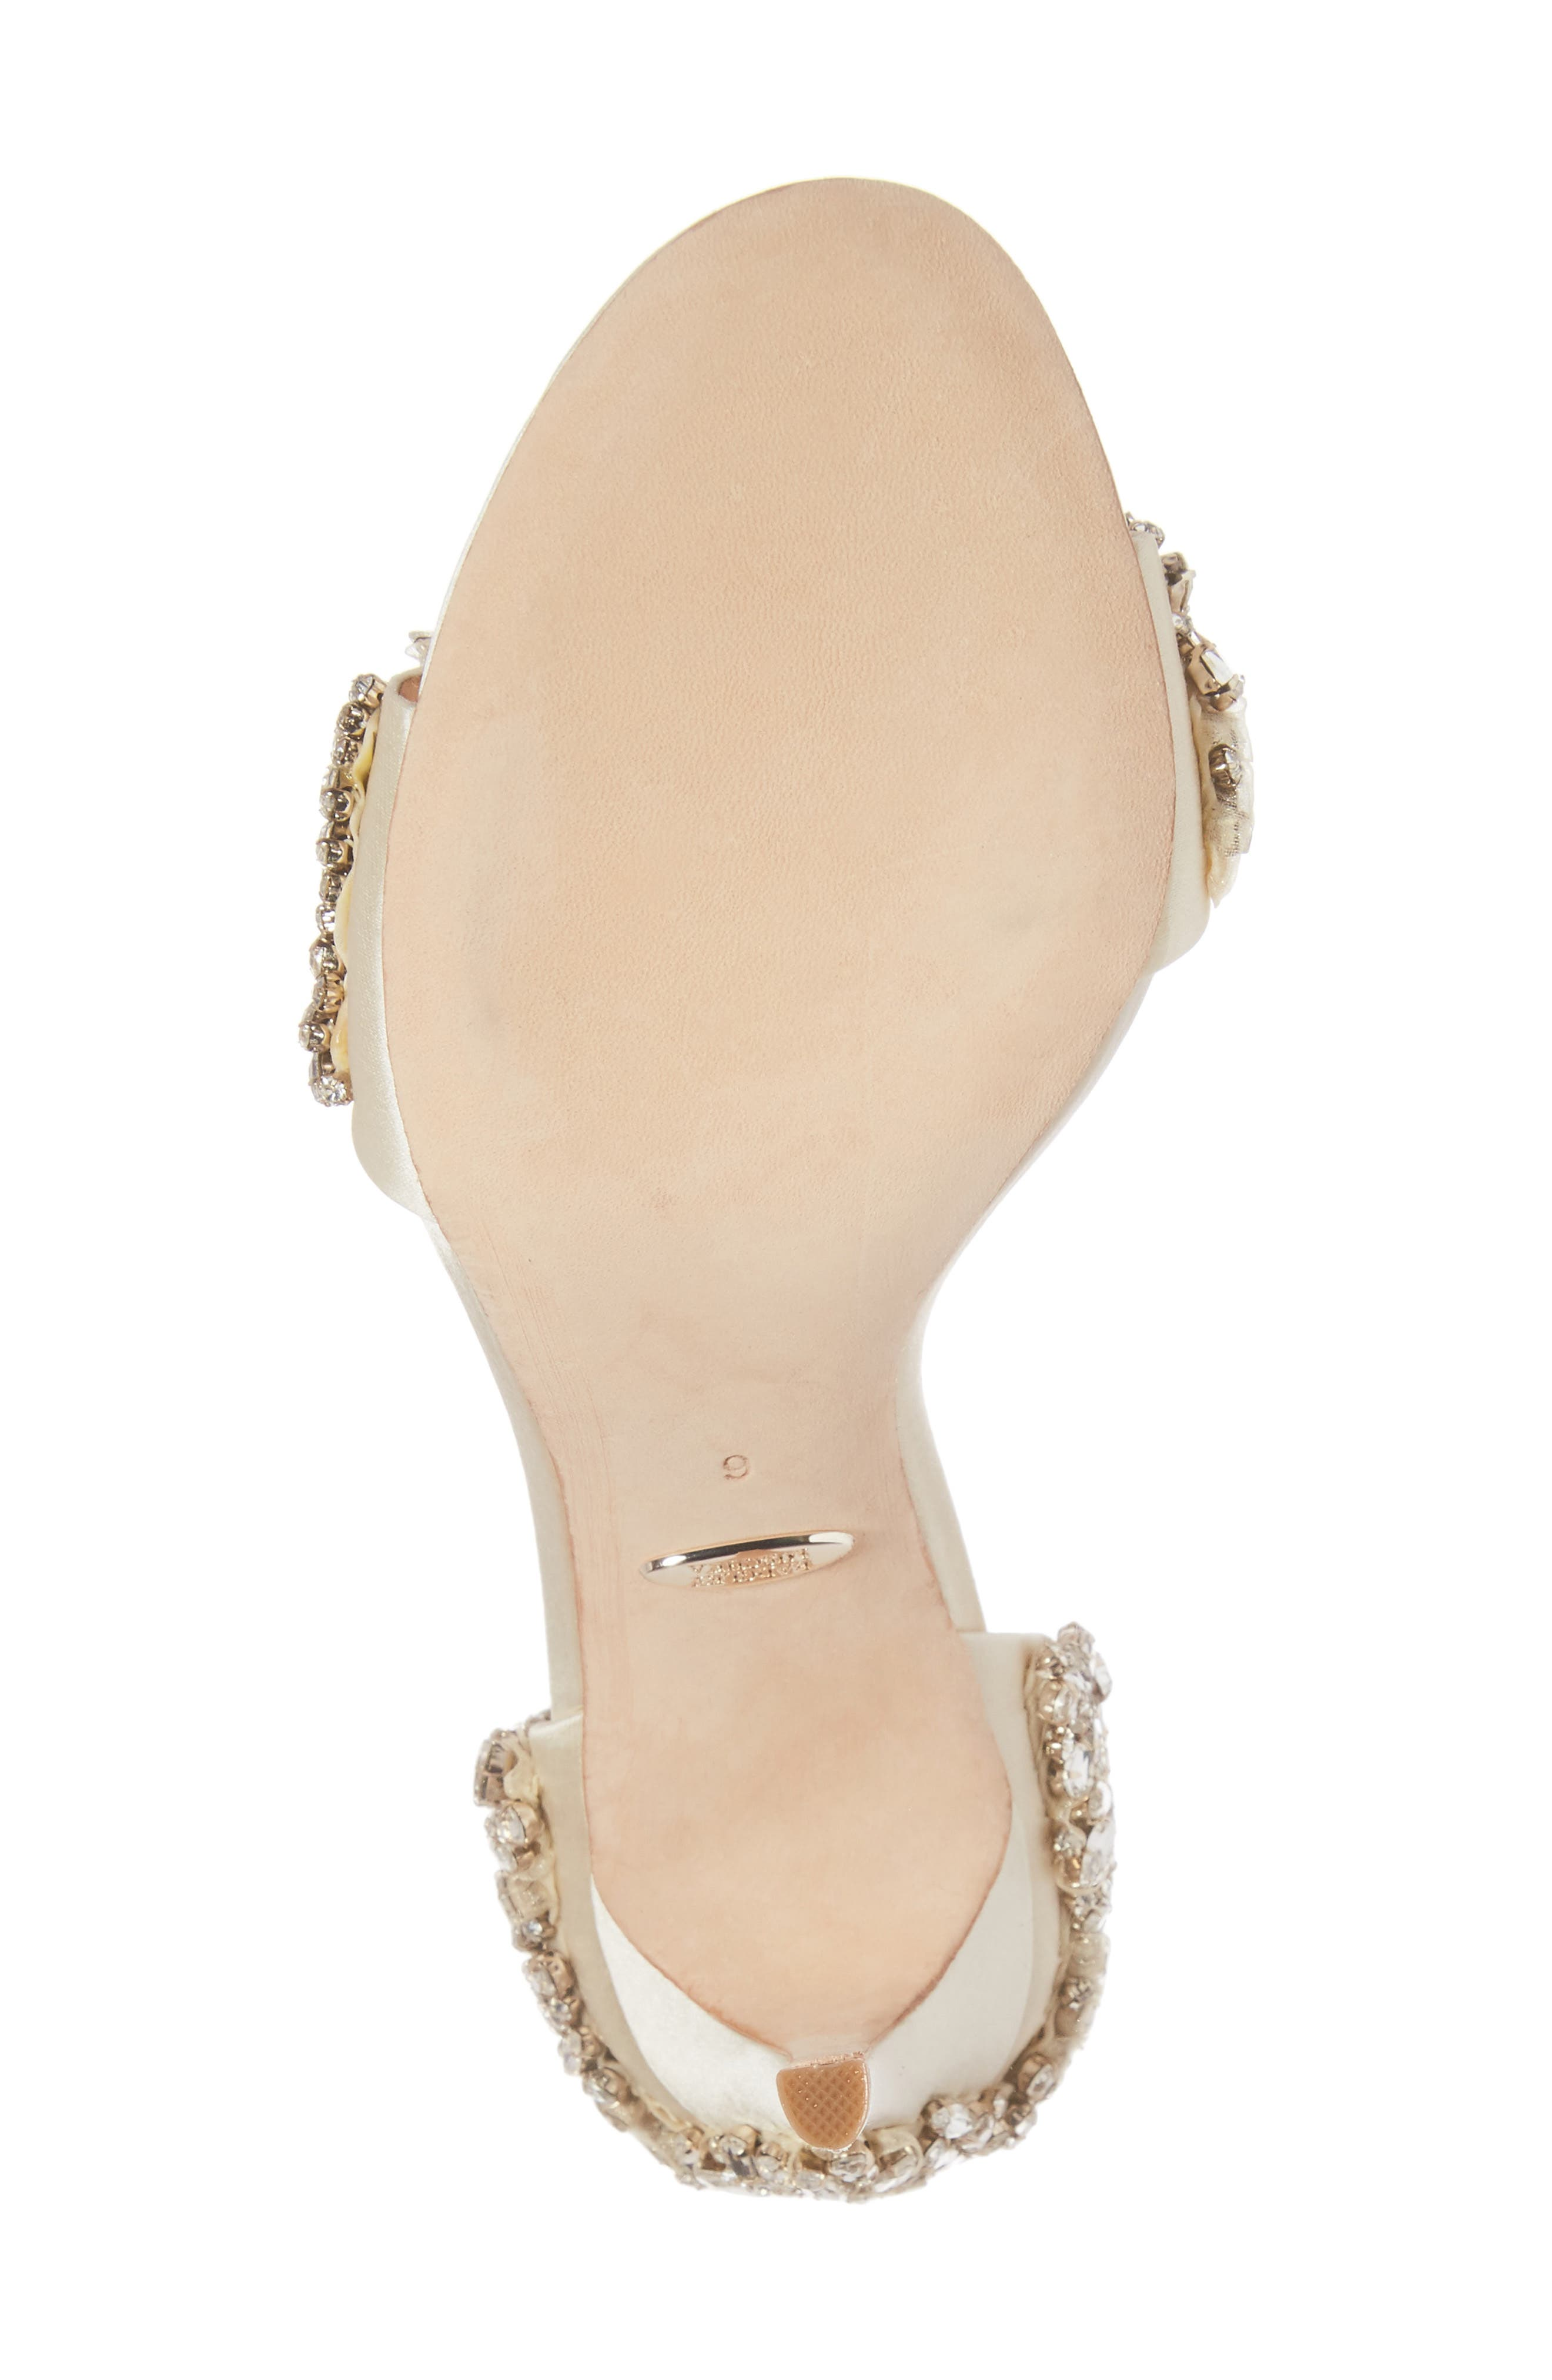 BADGLEY MISCHKA COLLECTION, Badgley Mischka Tampa Ankle Strap Sandal, Alternate thumbnail 6, color, IVORY SATIN